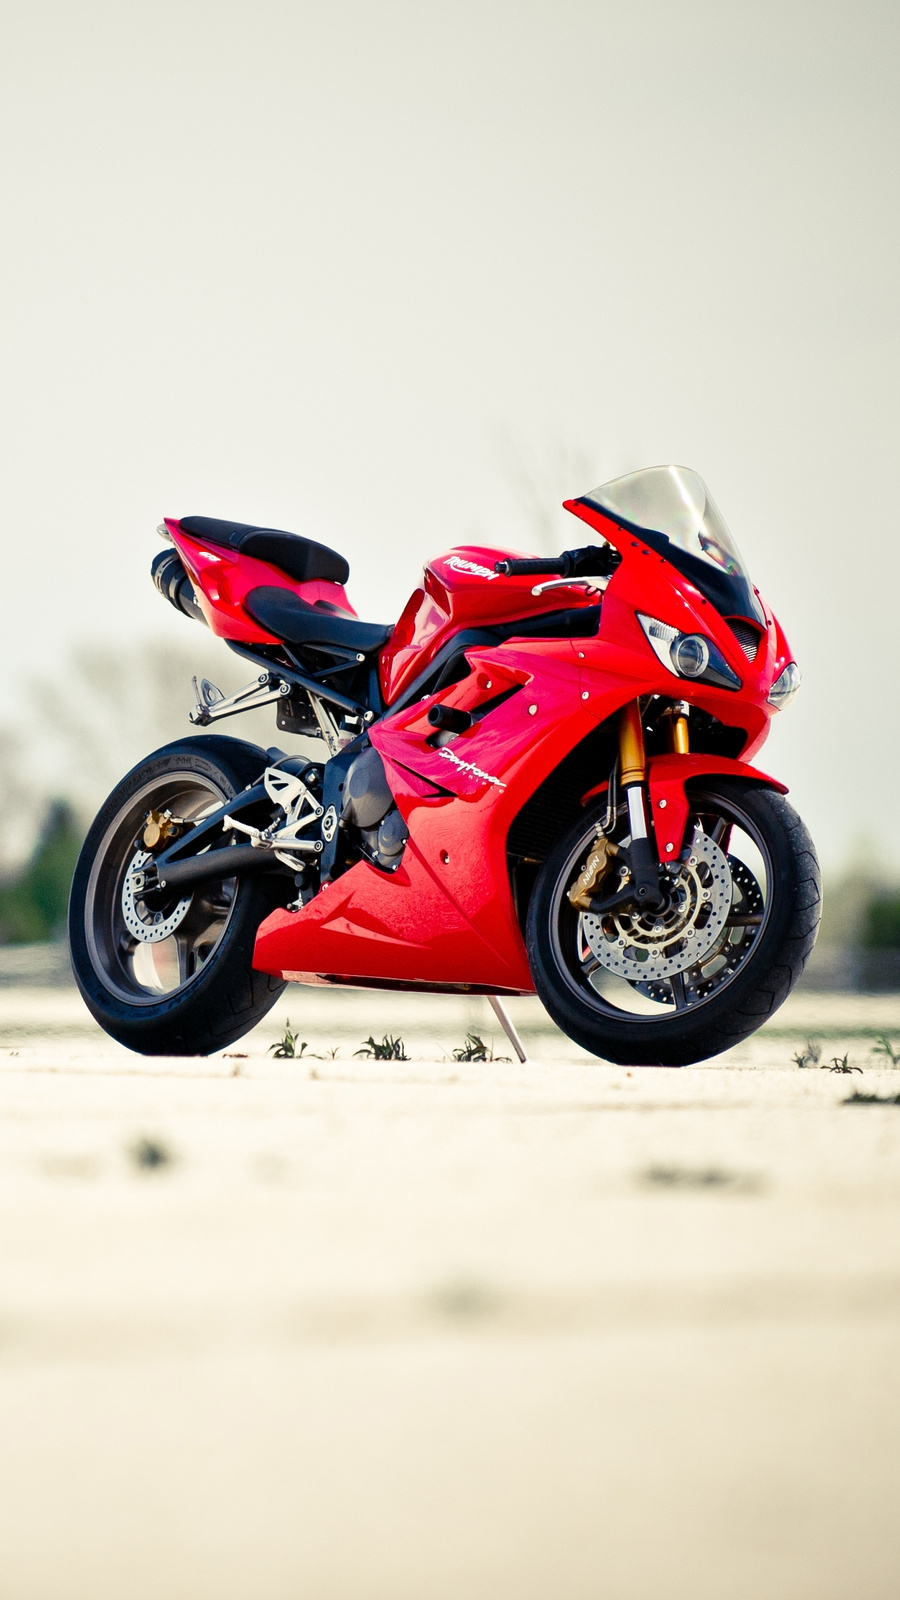 Anime Wallpaper Phone Quotes Triumph Daytona 675 Iphone Wallpaper Iphone Wallpapers